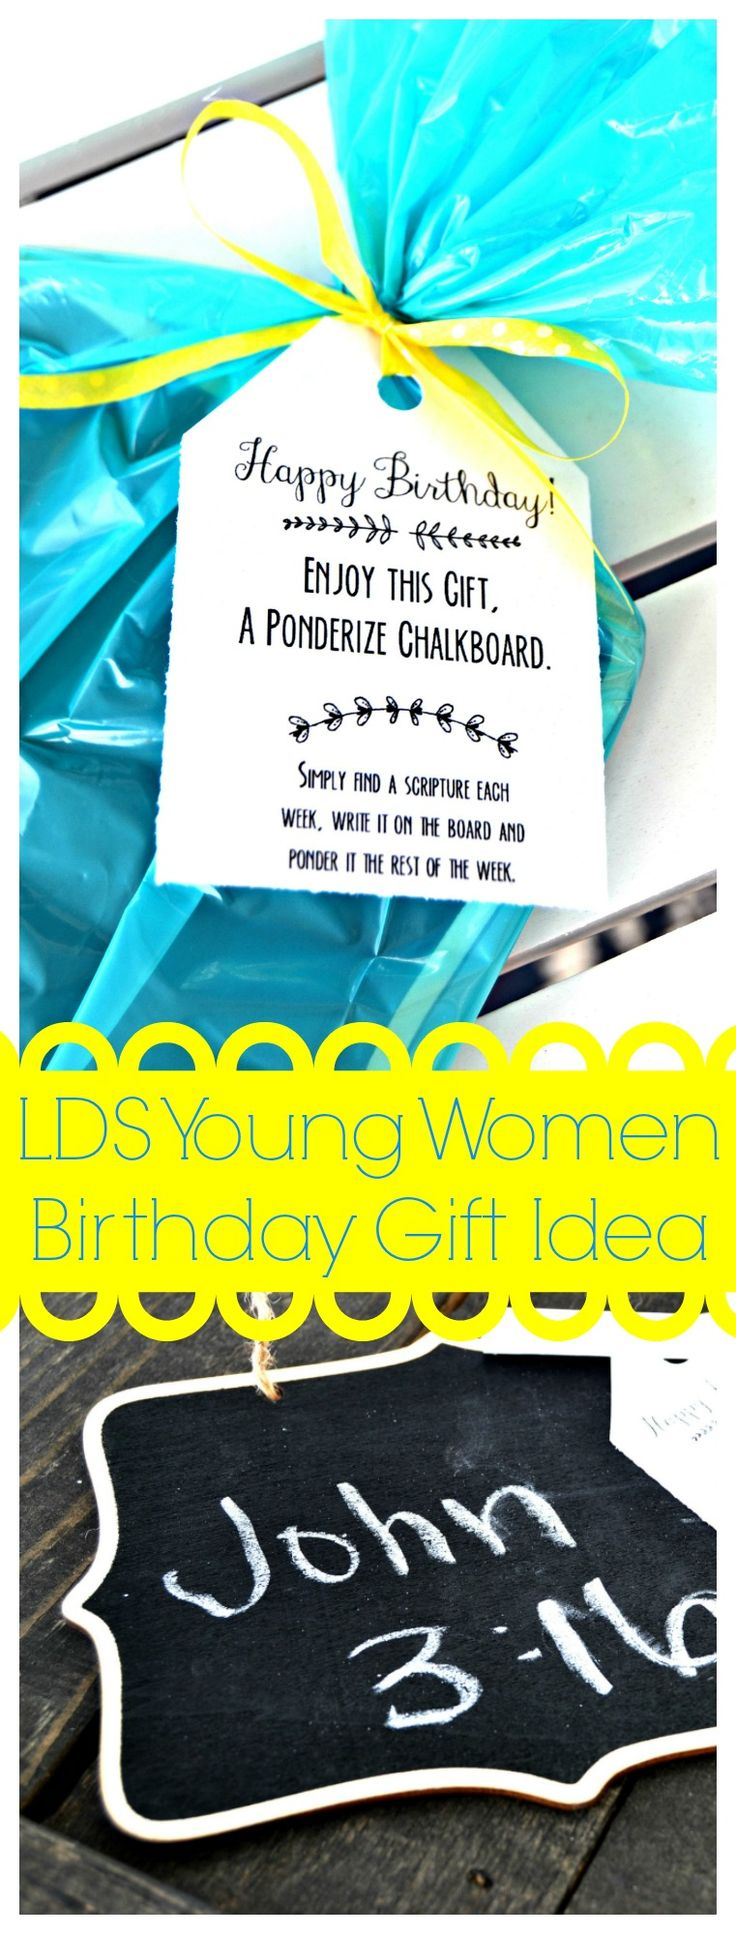 Best Christmas Gifts For Young Women Part - 25: LDS Young Women Ponderize Chalkboard Gift Idea